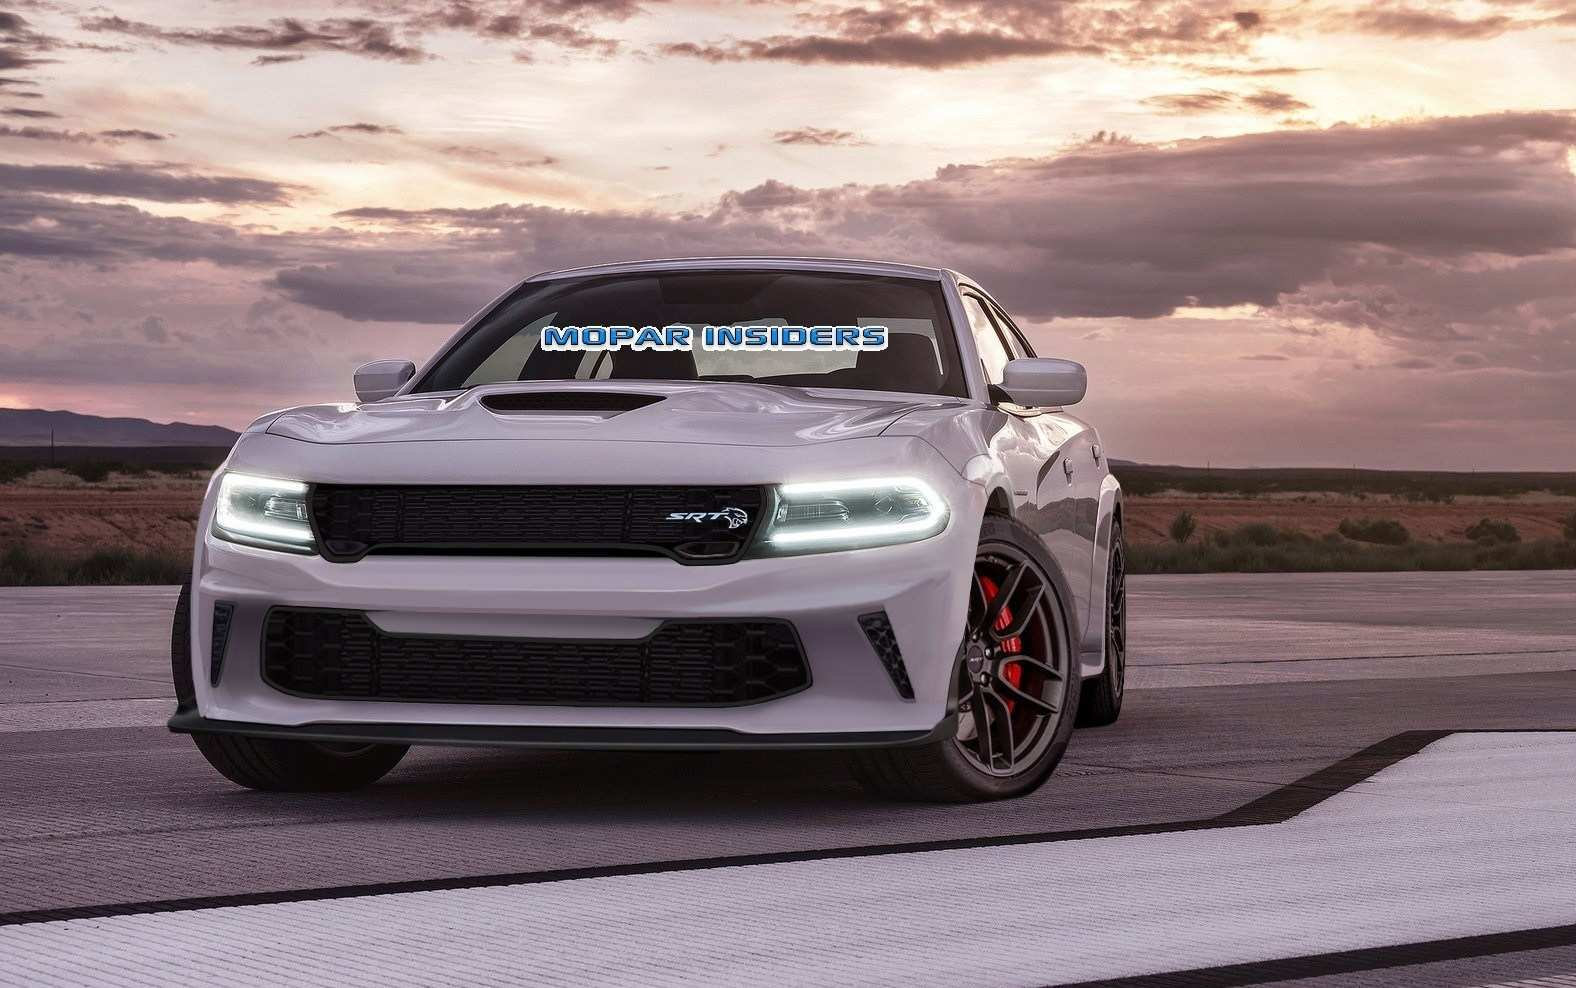 44 Best Review When Is The 2020 Dodge Charger Coming Out Concept for When Is The 2020 Dodge Charger Coming Out